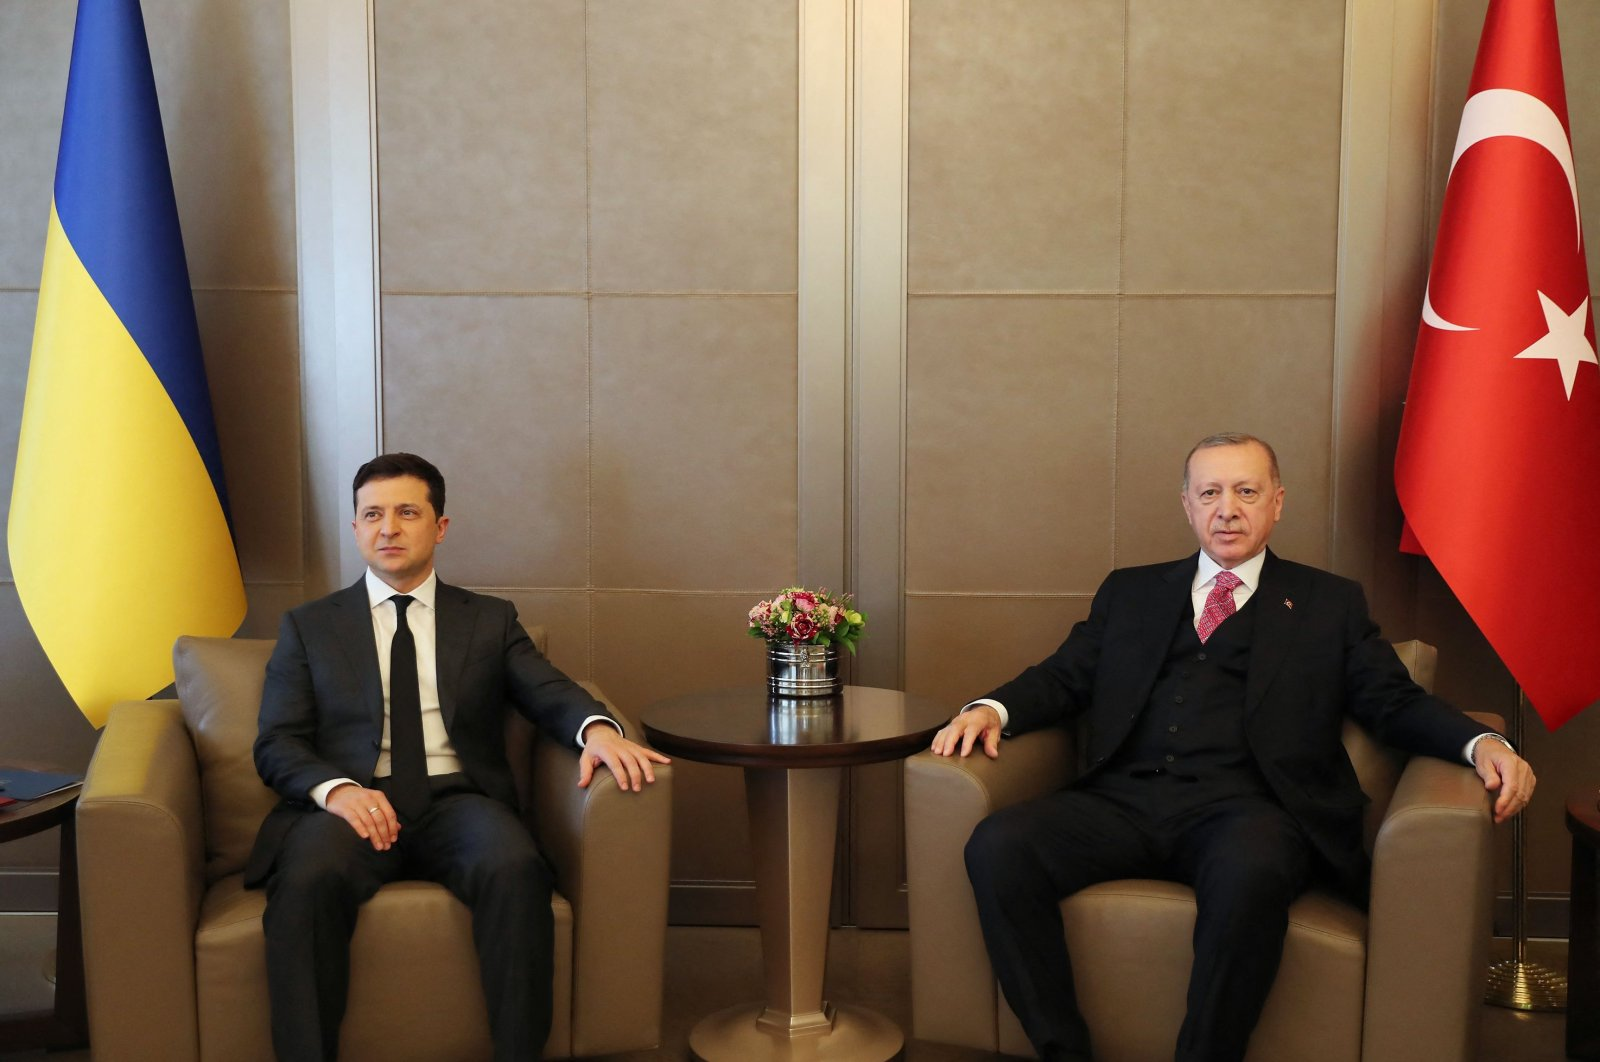 During Ukraine's President Volodymyr Zelenskiy's meeting (L) with Turkish President Recep Tayyip Erdoğan (R) in Istanbul, the two countries signed an agreement for Turkish government housing agency TOKI to build 500 housing units for Crimean Tatar Turks in Ukraine, April 10, 2021. (AFP Photo)